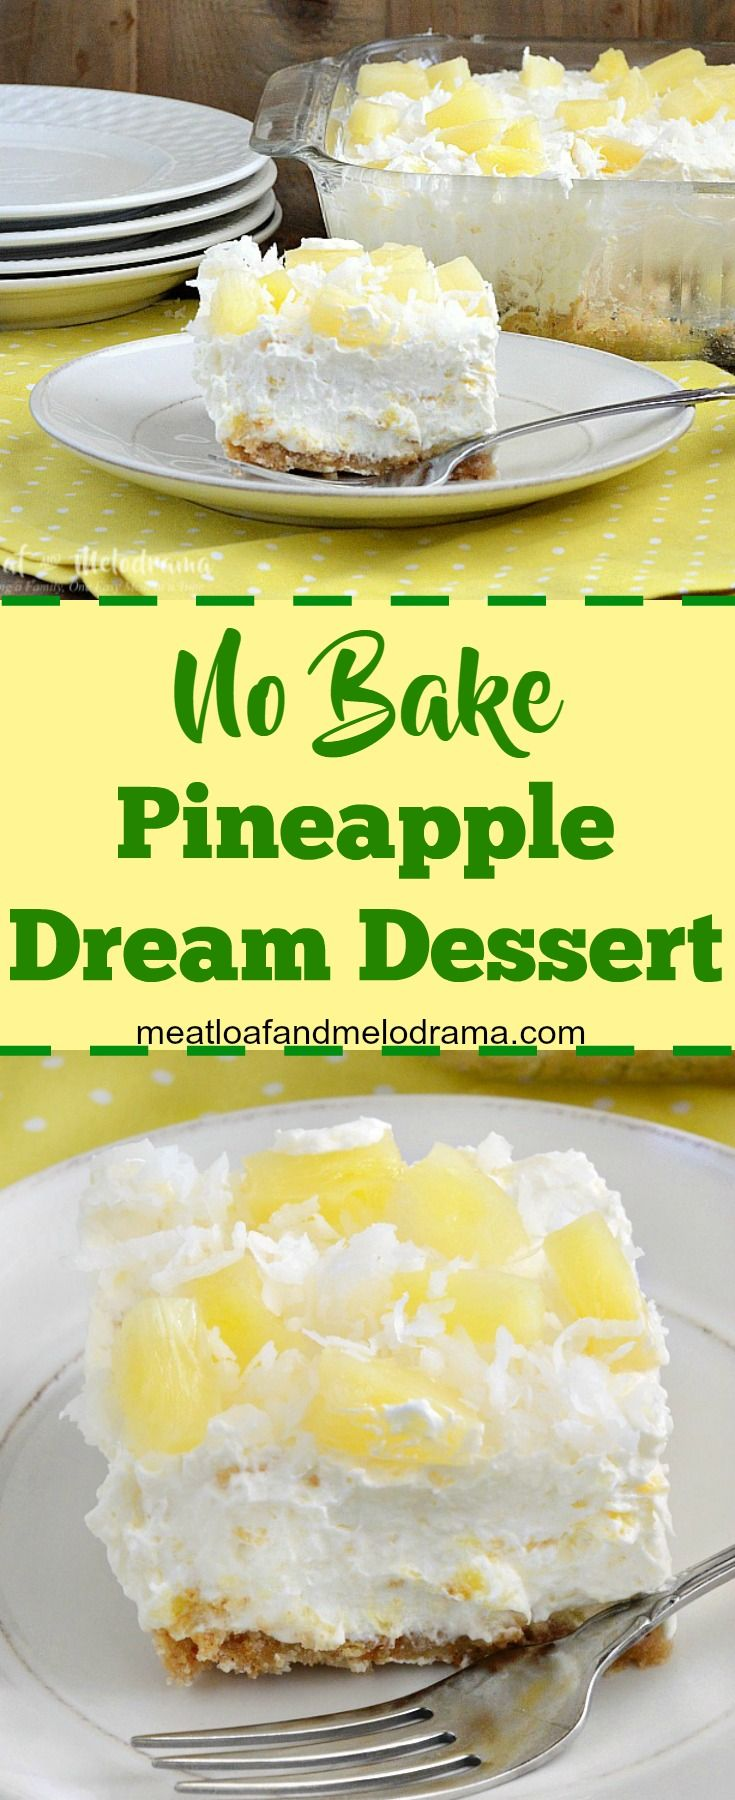 No Bake Pineapple Dream Dessert - A cool, creamy, fluffy dessert that's easy to make and perfect for holidays, potlucks, parties or anytime. If you like retro vintage recipes, you'll love this! from Meatloaf and Melodrama